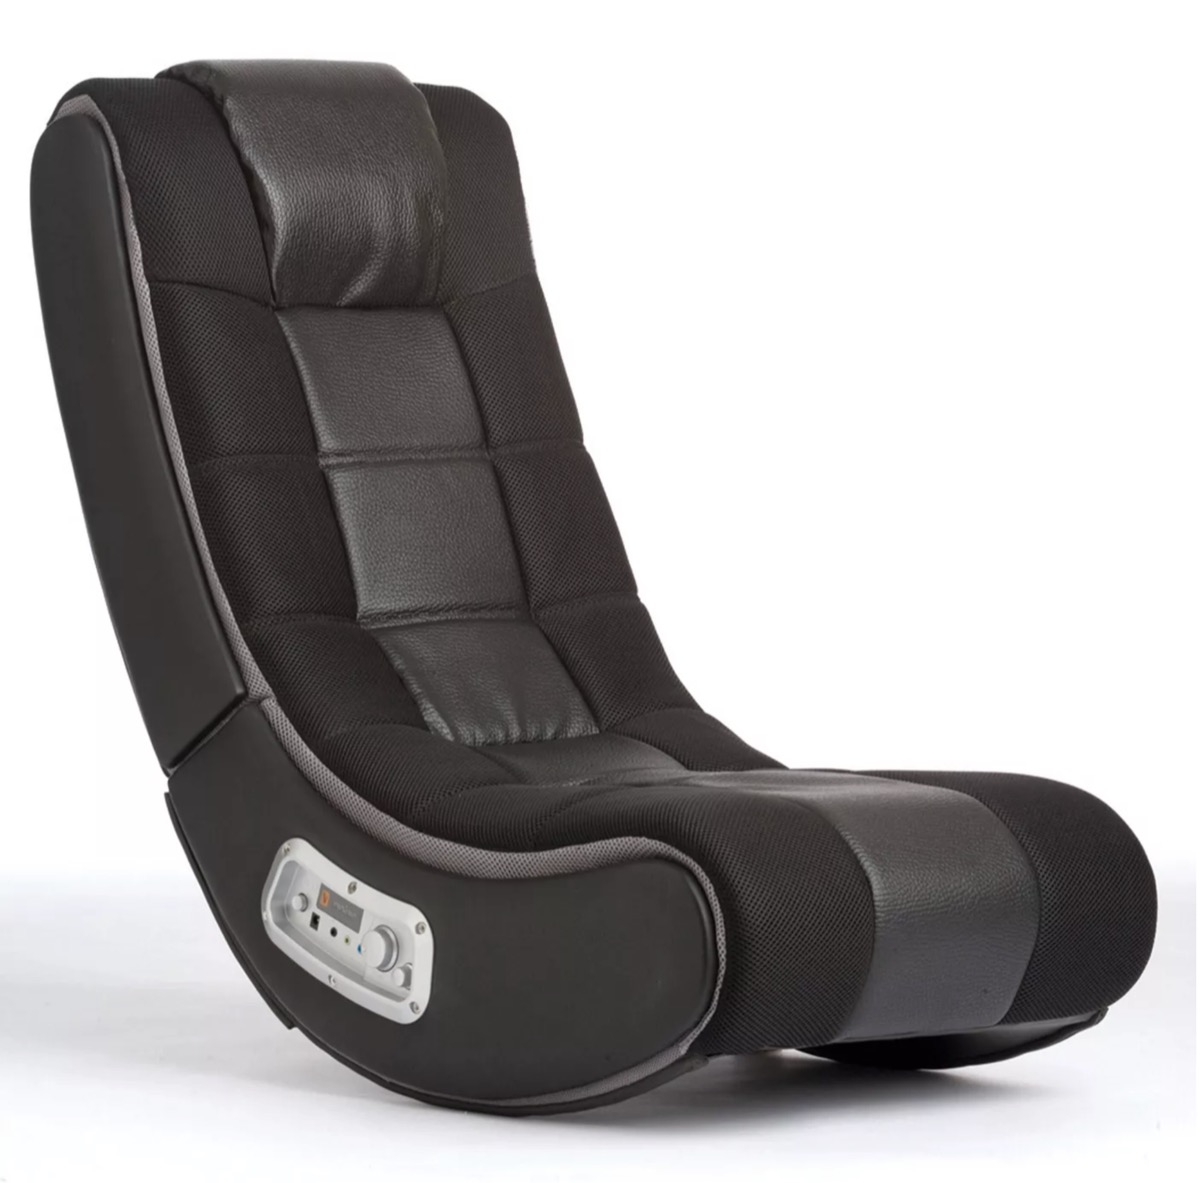 gaming chair black and grey